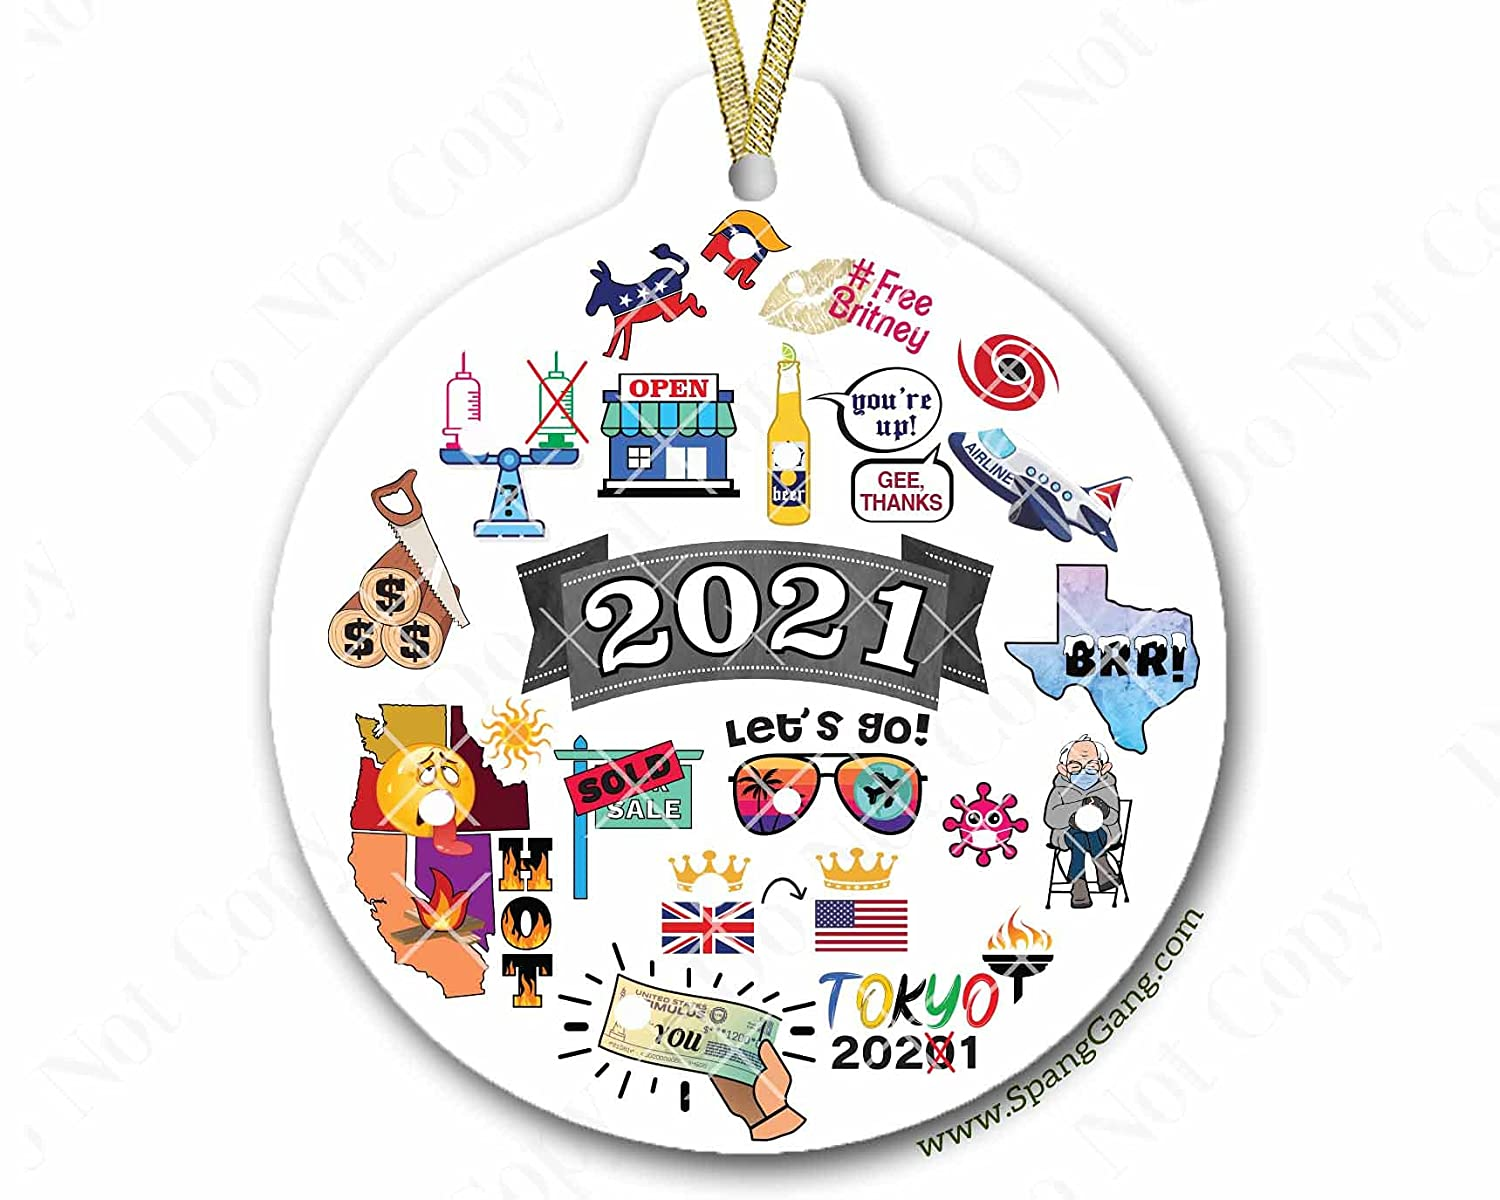 Complete Free Shipping 2021 Christmas Ornament the PANDEMIC ornament Jacksonville Mall ORIGINAL COLLAGE